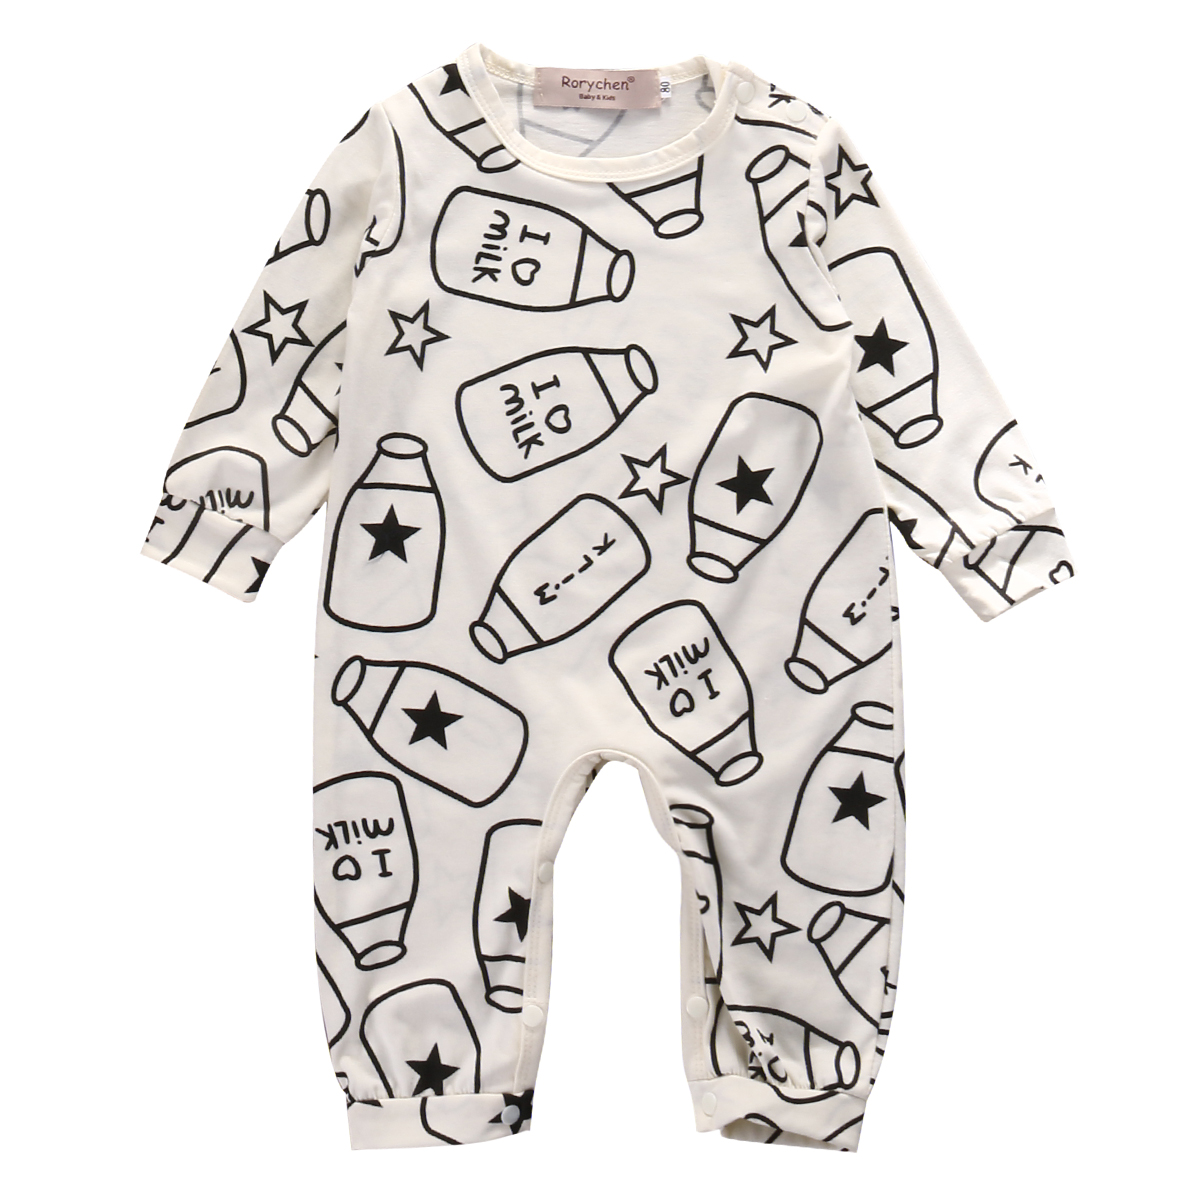 Baby Kids Boy Girl Clothing Warm Infant Romper Jumpsuit Long Sleeve Cotton Clothes Baby Boys Outfit newborn infant baby boy girl cotton romper jumpsuit boys girl angel wings long sleeve rompers white gray autumn clothes outfit